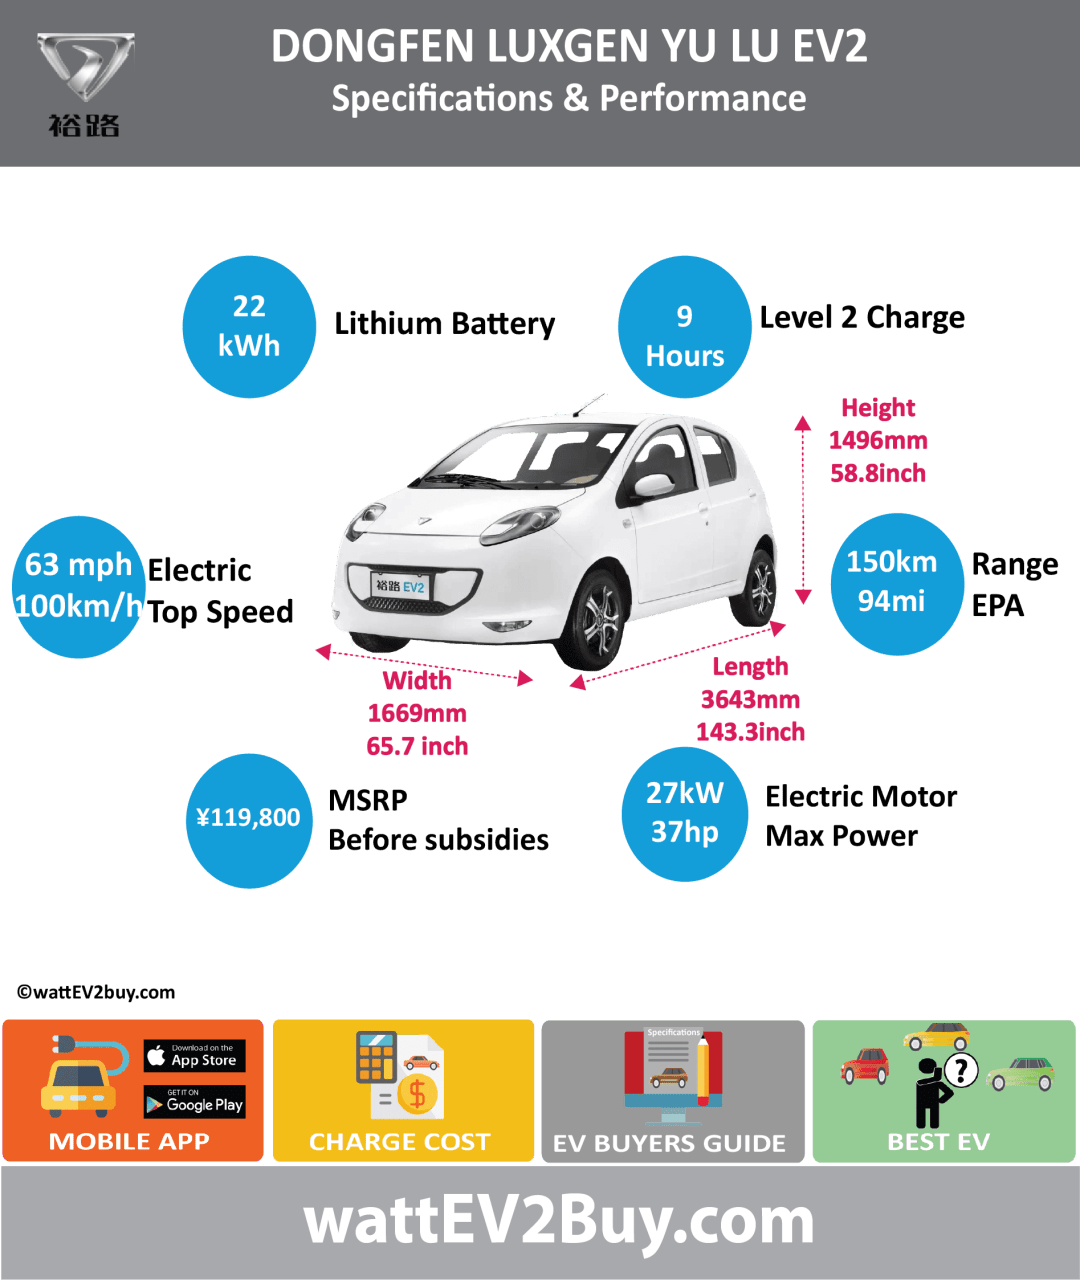 DONGFENG LUXGEN YU LU EV2 SPECS wattev2Buy.com2017 Battery ChemistryTernary Lithium Battery Capacity kWh21.9 Battery Nominal rating kWh Voltage V Amps Ah Cells Modules Efficiency Weight (kg)179 Cell Type SOC Cooling Cycles Battery Type Depth of Discharge (DOD) Energy Density Wh/kg Battery Manufacturer Battery Warranty - years3 Battery Warranty - km100000 Battery Warranty - miles Battery Electric Range - at constant 38mph Battery Electric Range - at constant 60km/h Battery Electric Range - NEDC Mi93.75 Battery Electric Range - NEDC km150 Battery Electric Range - CCM Mi Battery Electric Range - CCM km Battery Electric Range - EPA Mi Battery Electric Range - EPA km Electric Top Speed - mph63 Electric Top Speed - km/h100 Acceleration 0 - 100km/h sec Acceleration 0 - 50km/h sec Acceleration 0 - 62mph sec Acceleration 0 - 60mph sec Acceleration 0 - 37.2mph sec Wireless Charging Direct Current Fast Charge kW Charger Efficiency Onboard Charger kW Onboard Charger Optional kW Charging Cord - amps Charging Cord - volts LV 1 Charge kW LV 1 Charge Time (Hours) LV 2 Charge kW LV 2 Charge Time (Hours)9 LV 3 CCS/Combo kW LV 3 Charge Time (min to 70%) LV 3 Charge Time (min to 80%) LV 3 Charge Time (mi) LV 3 Charge Time (km) Supercharger Charging System kW Charger Output Charge Connector Power Outlet kW Power Outlet Amps MPGe Combined - miles MPGe Combined - km MPGe City - miles MPGe City - km MPGe Highway - miles MPGe Highway - km Max Power - hp (Electric Max)37 Max Power - kW27 Max Torque - lb.ft  (Electric Max) Max Torque - N.m  (Electric Max)140 Drivetrain Generator Motor Type Electric Motor Manufacturer Electric Motor Output kW Electric Motor Output hp Transmission Electric Motor - Rear Max Power - hp (Rear) Max Power - kW (Rear) Max Torque - lb.ft (Rear) Max Torque - N.m (Rear) Electric Motor - Front Max Power - hp (Front) Max Power - kW (Front) Max Torque - lb.ft (Front) Max Torque - N.m (Front) Energy Consumption kWh/100km Energy Consumption kWh/100miles Deposit GB Battery Le